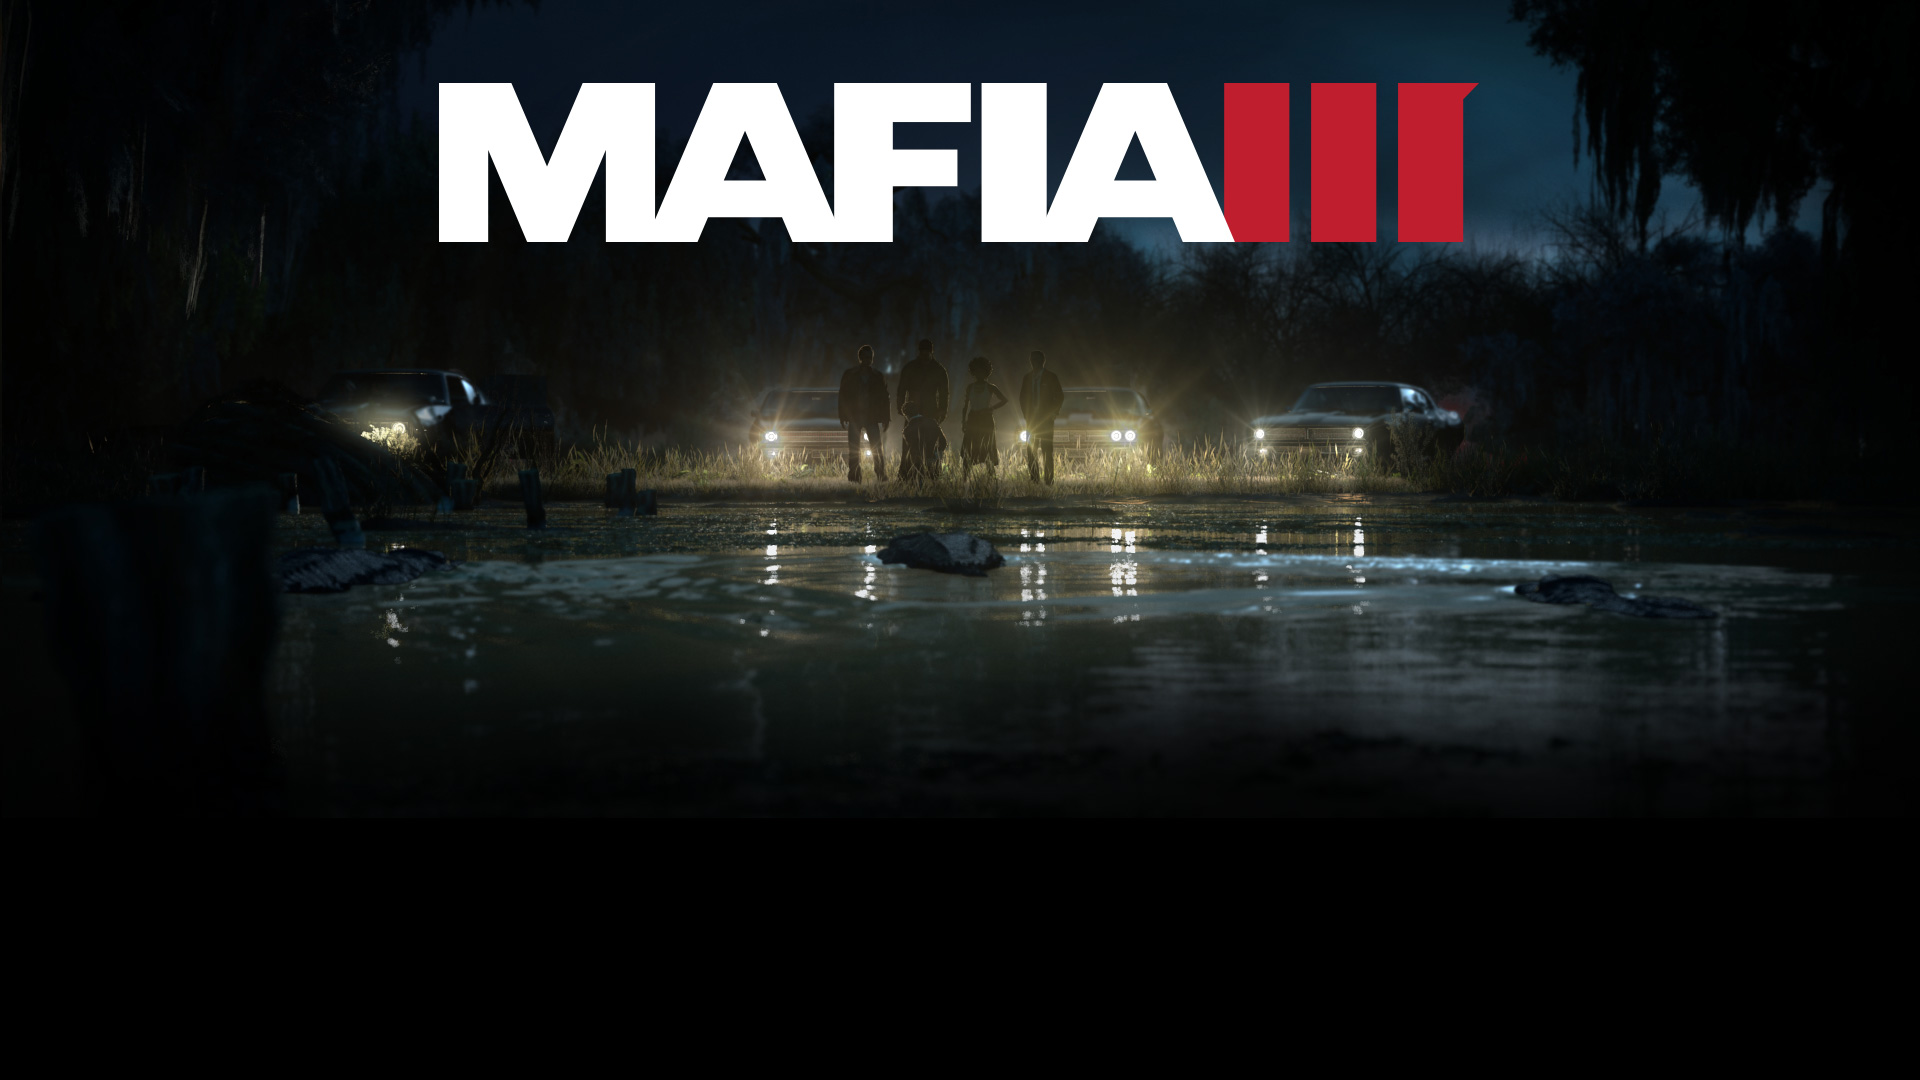 Mafia III - artwork 01